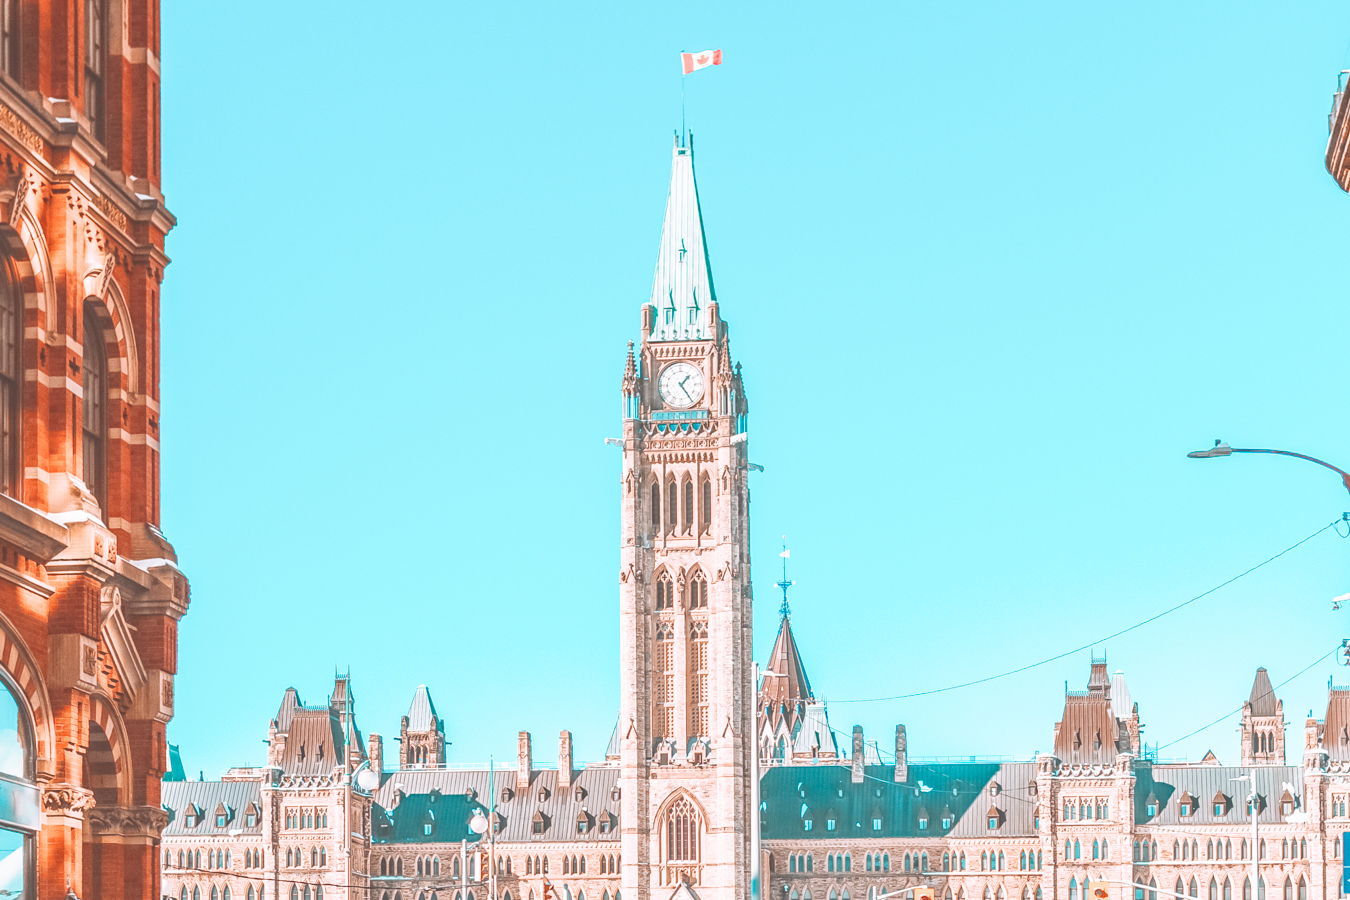 A view of the Parliament of Canada